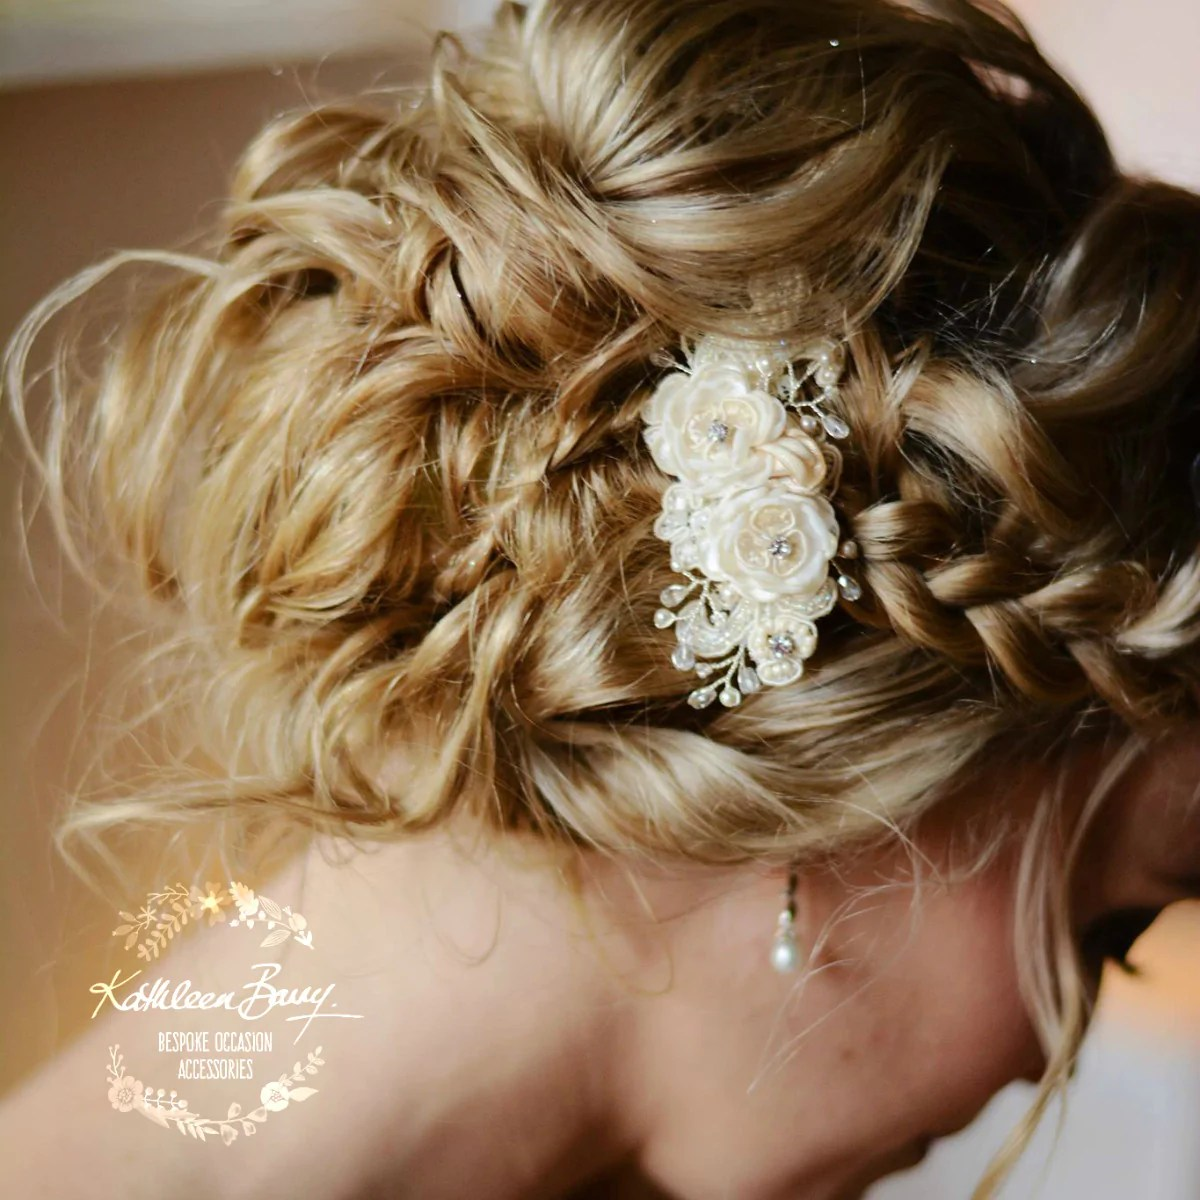 sheena hairpiece lace ivory small flowers and hand beaded chantilly lace bridal wedding hair